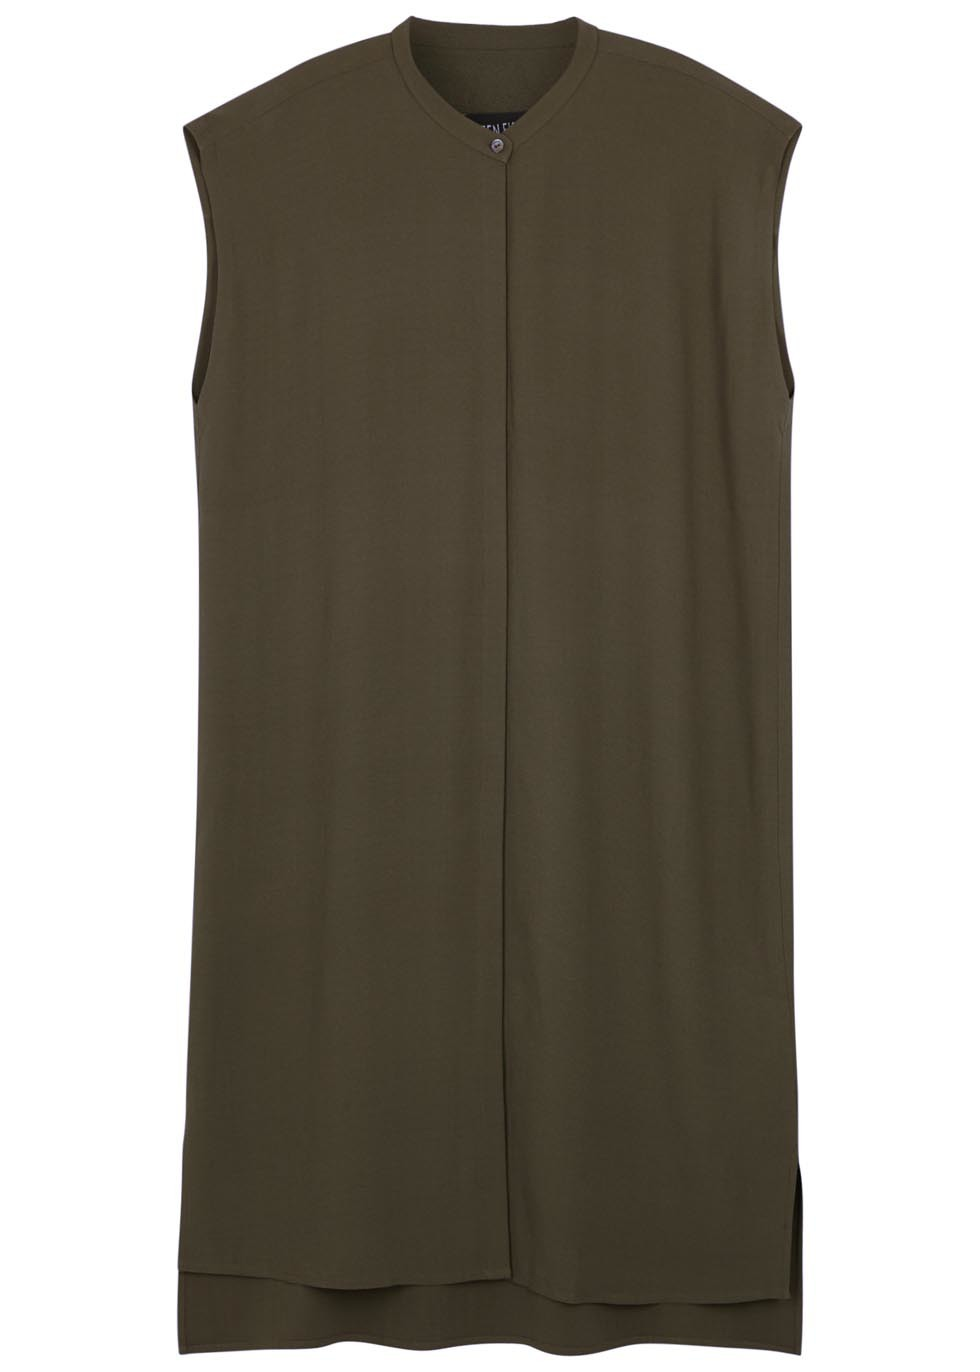 Olive Silk Georgette Tunic - pattern: plain; sleeve style: sleeveless; length: below the bottom; style: tunic; predominant colour: khaki; occasions: casual; neckline: collarstand; fibres: silk - 100%; fit: body skimming; sleeve length: sleeveless; texture group: silky - light; pattern type: fabric; season: s/s 2016; wardrobe: basic